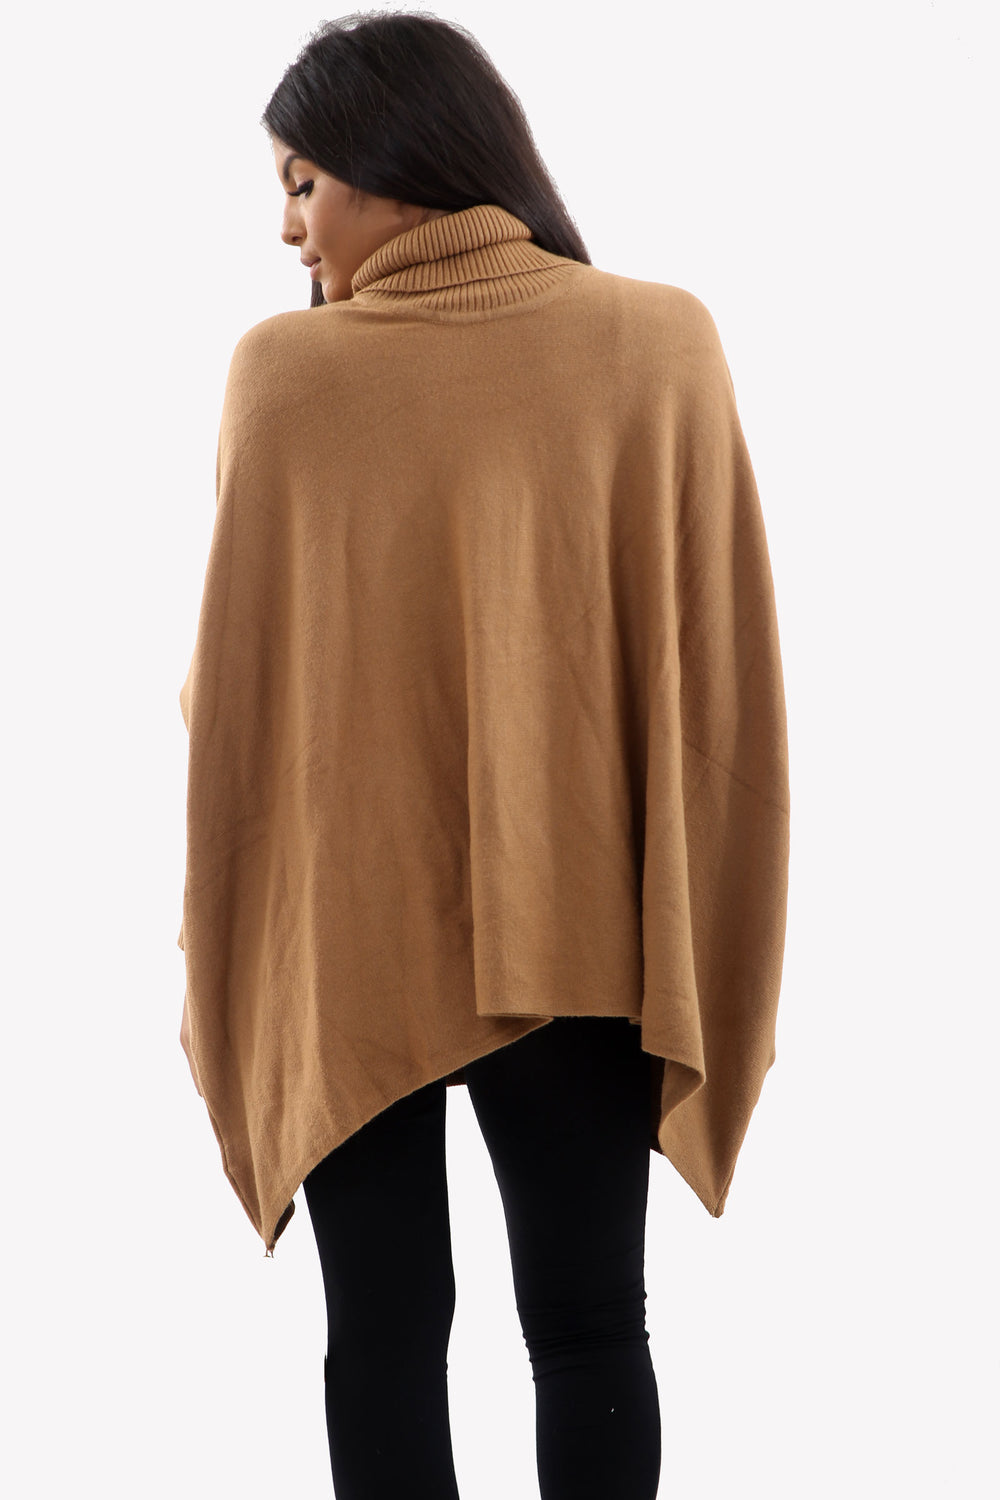 Camel Roll Neck Batwing Oversized Soft Jumper